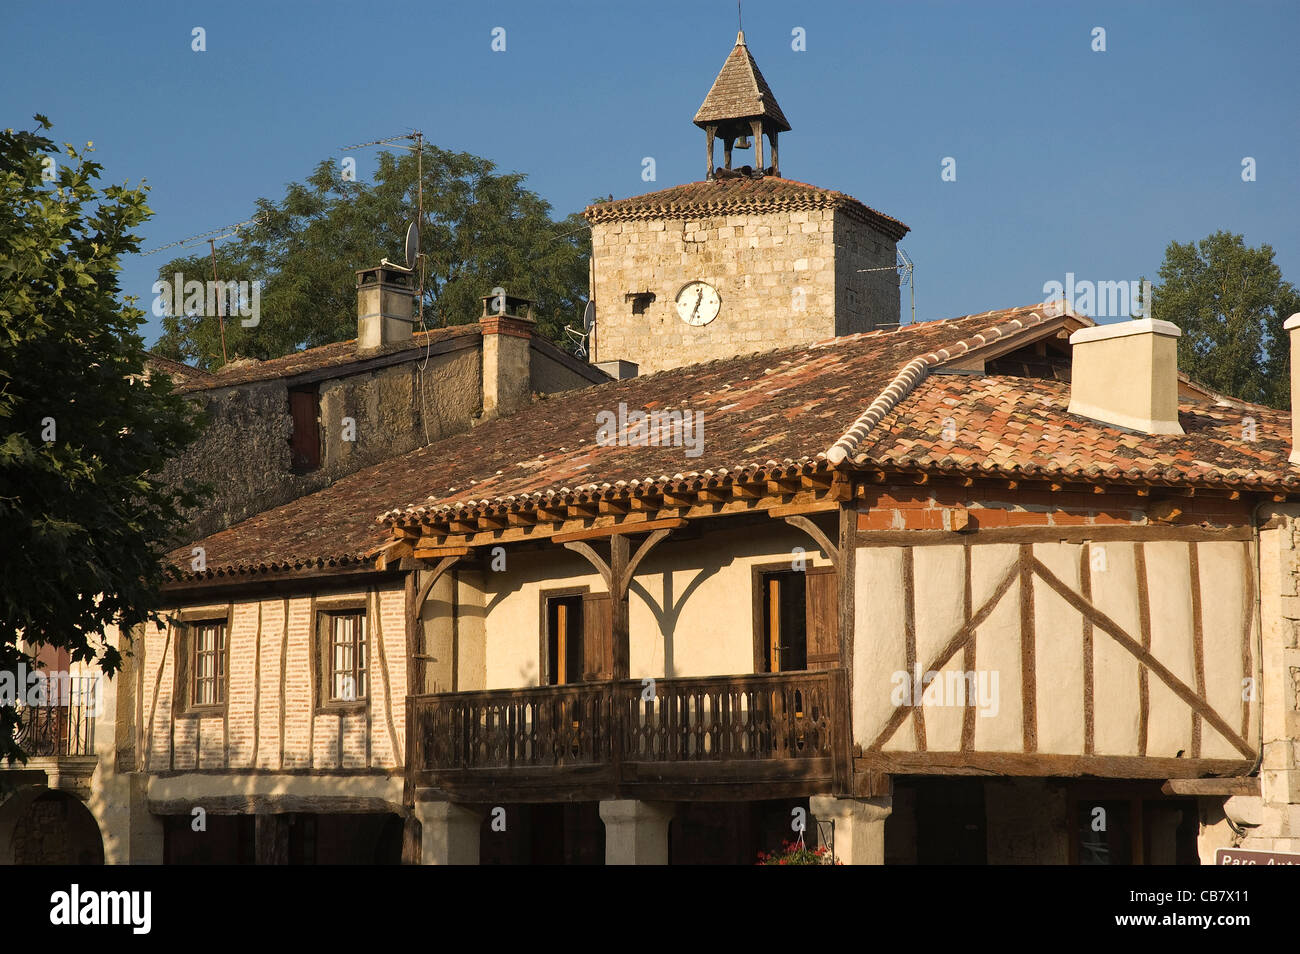 Elk196-1739 France, Aquitaine, Fources, architecture traditionnelle Photo Stock